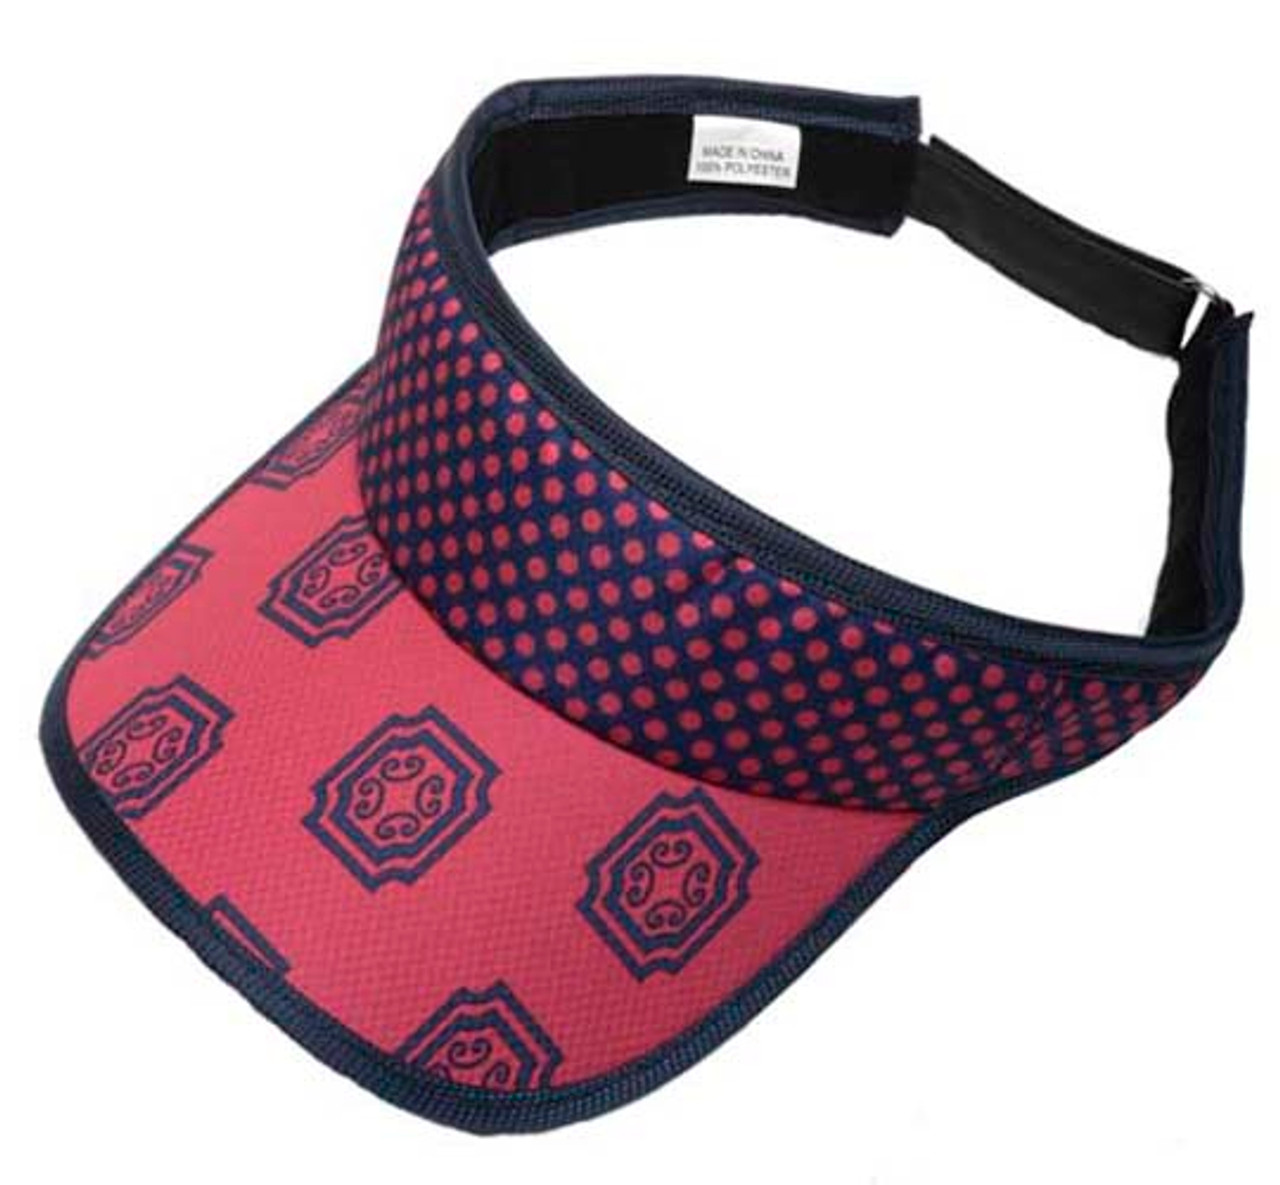 glove it orchid medallion ladies velcro golf visor  44469.1444790776.jpg c 2 imbypass on 76cf7d9c9fd